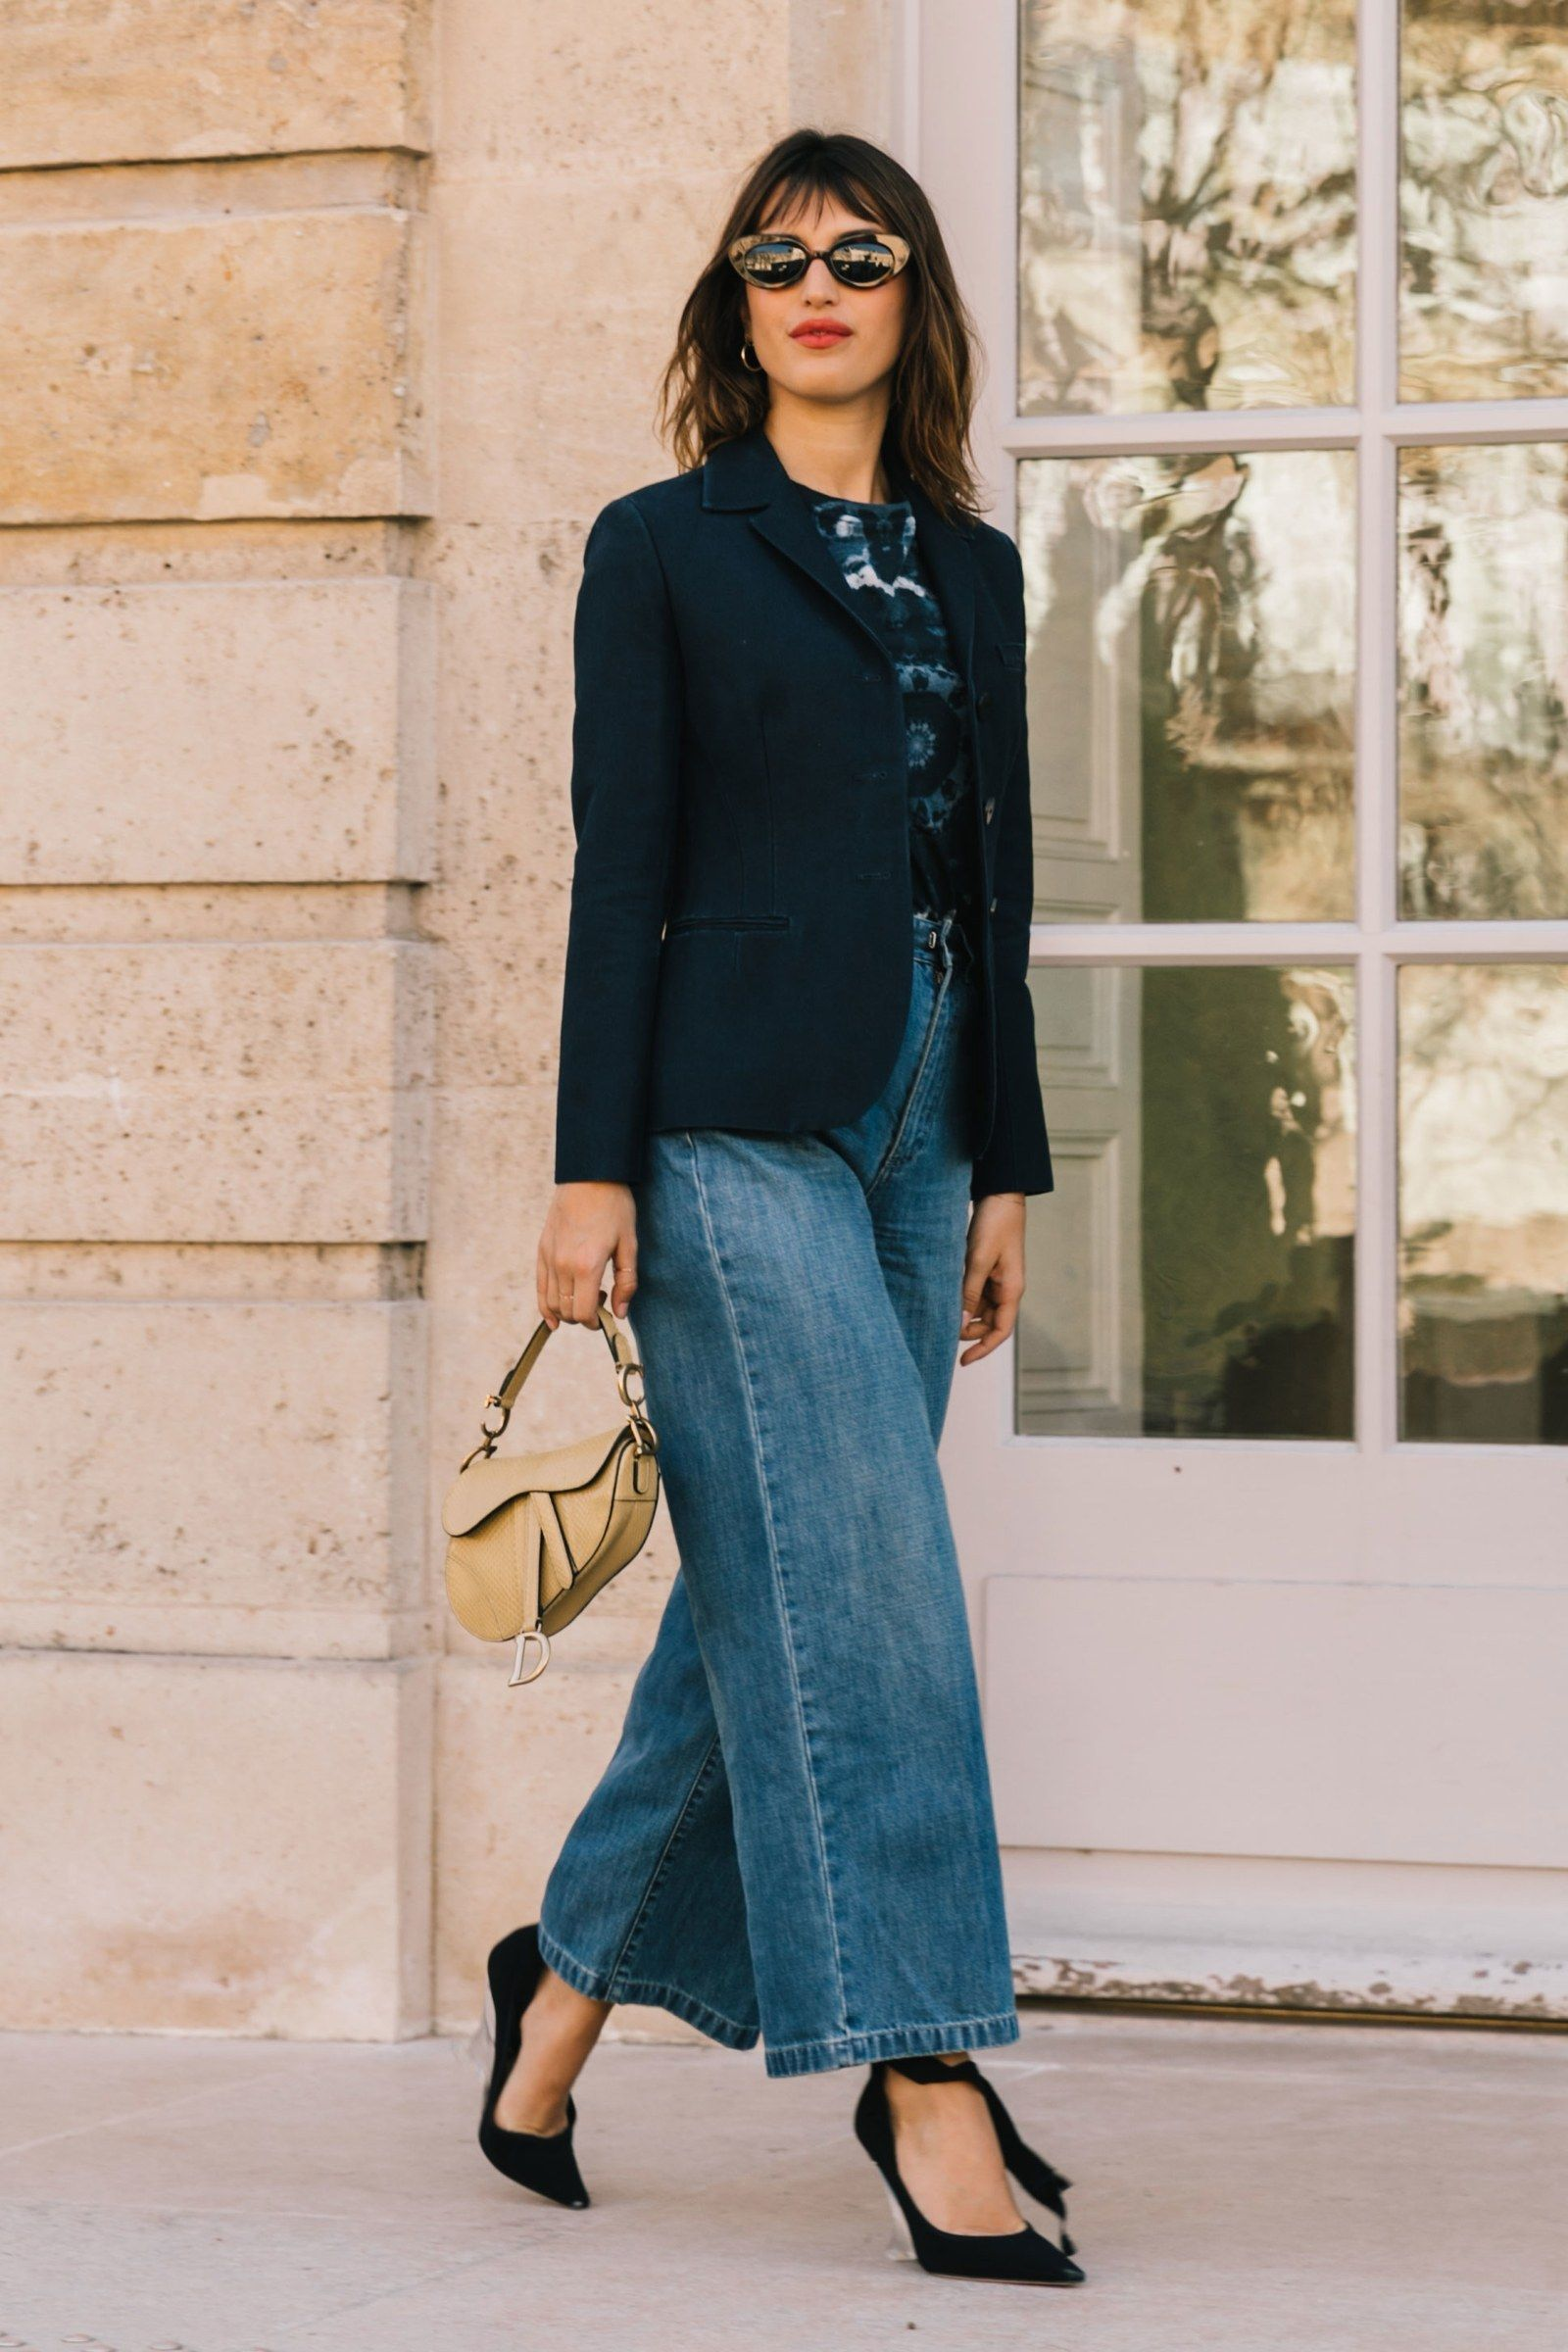 Fall Fashion With Jeans Dress 2020, Ideas, Picture Street style inspiration: Paris Fashion Week Fall/Winter 2019 2020